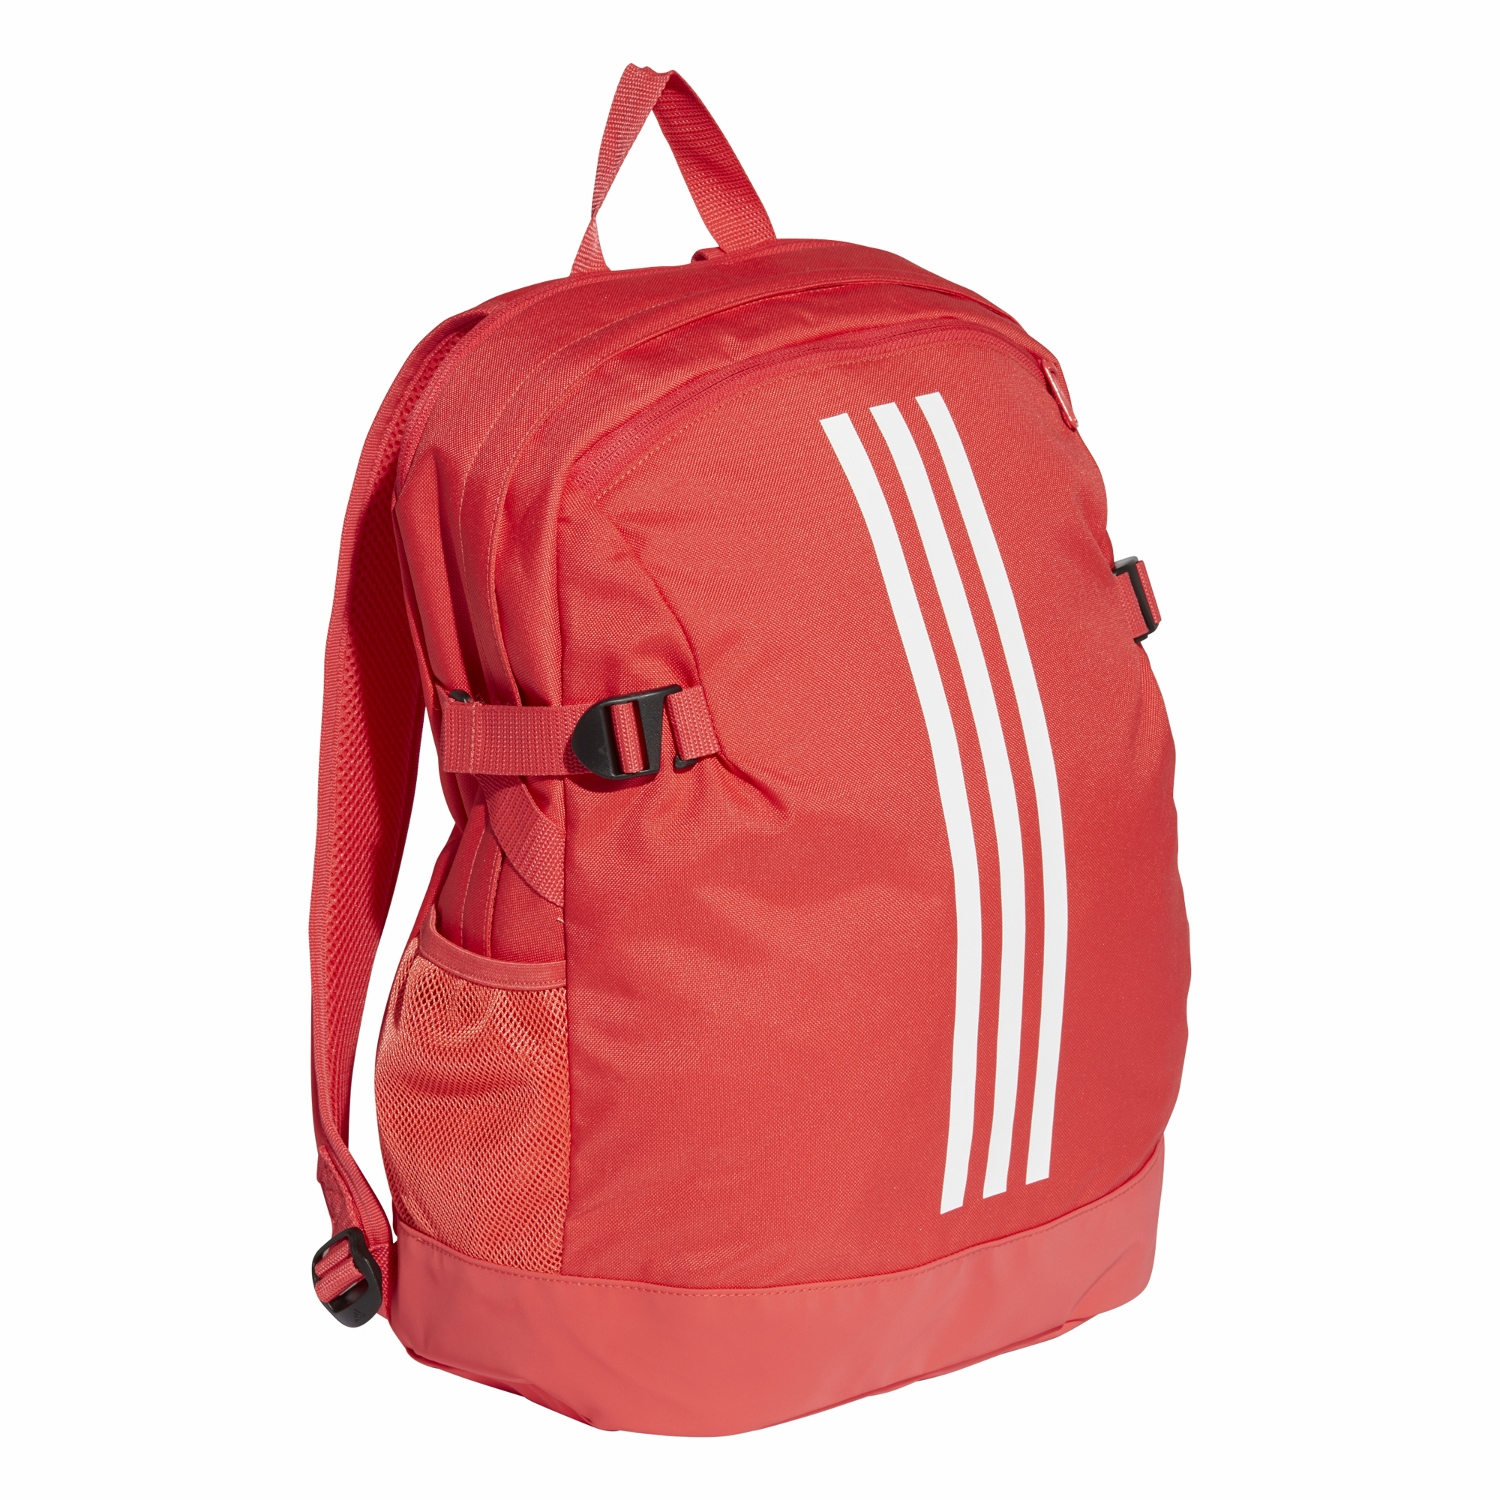 89ec17336a6f6 ... plecak adidas 3-Stripes Power Medium CG0498 (5).jpg ...